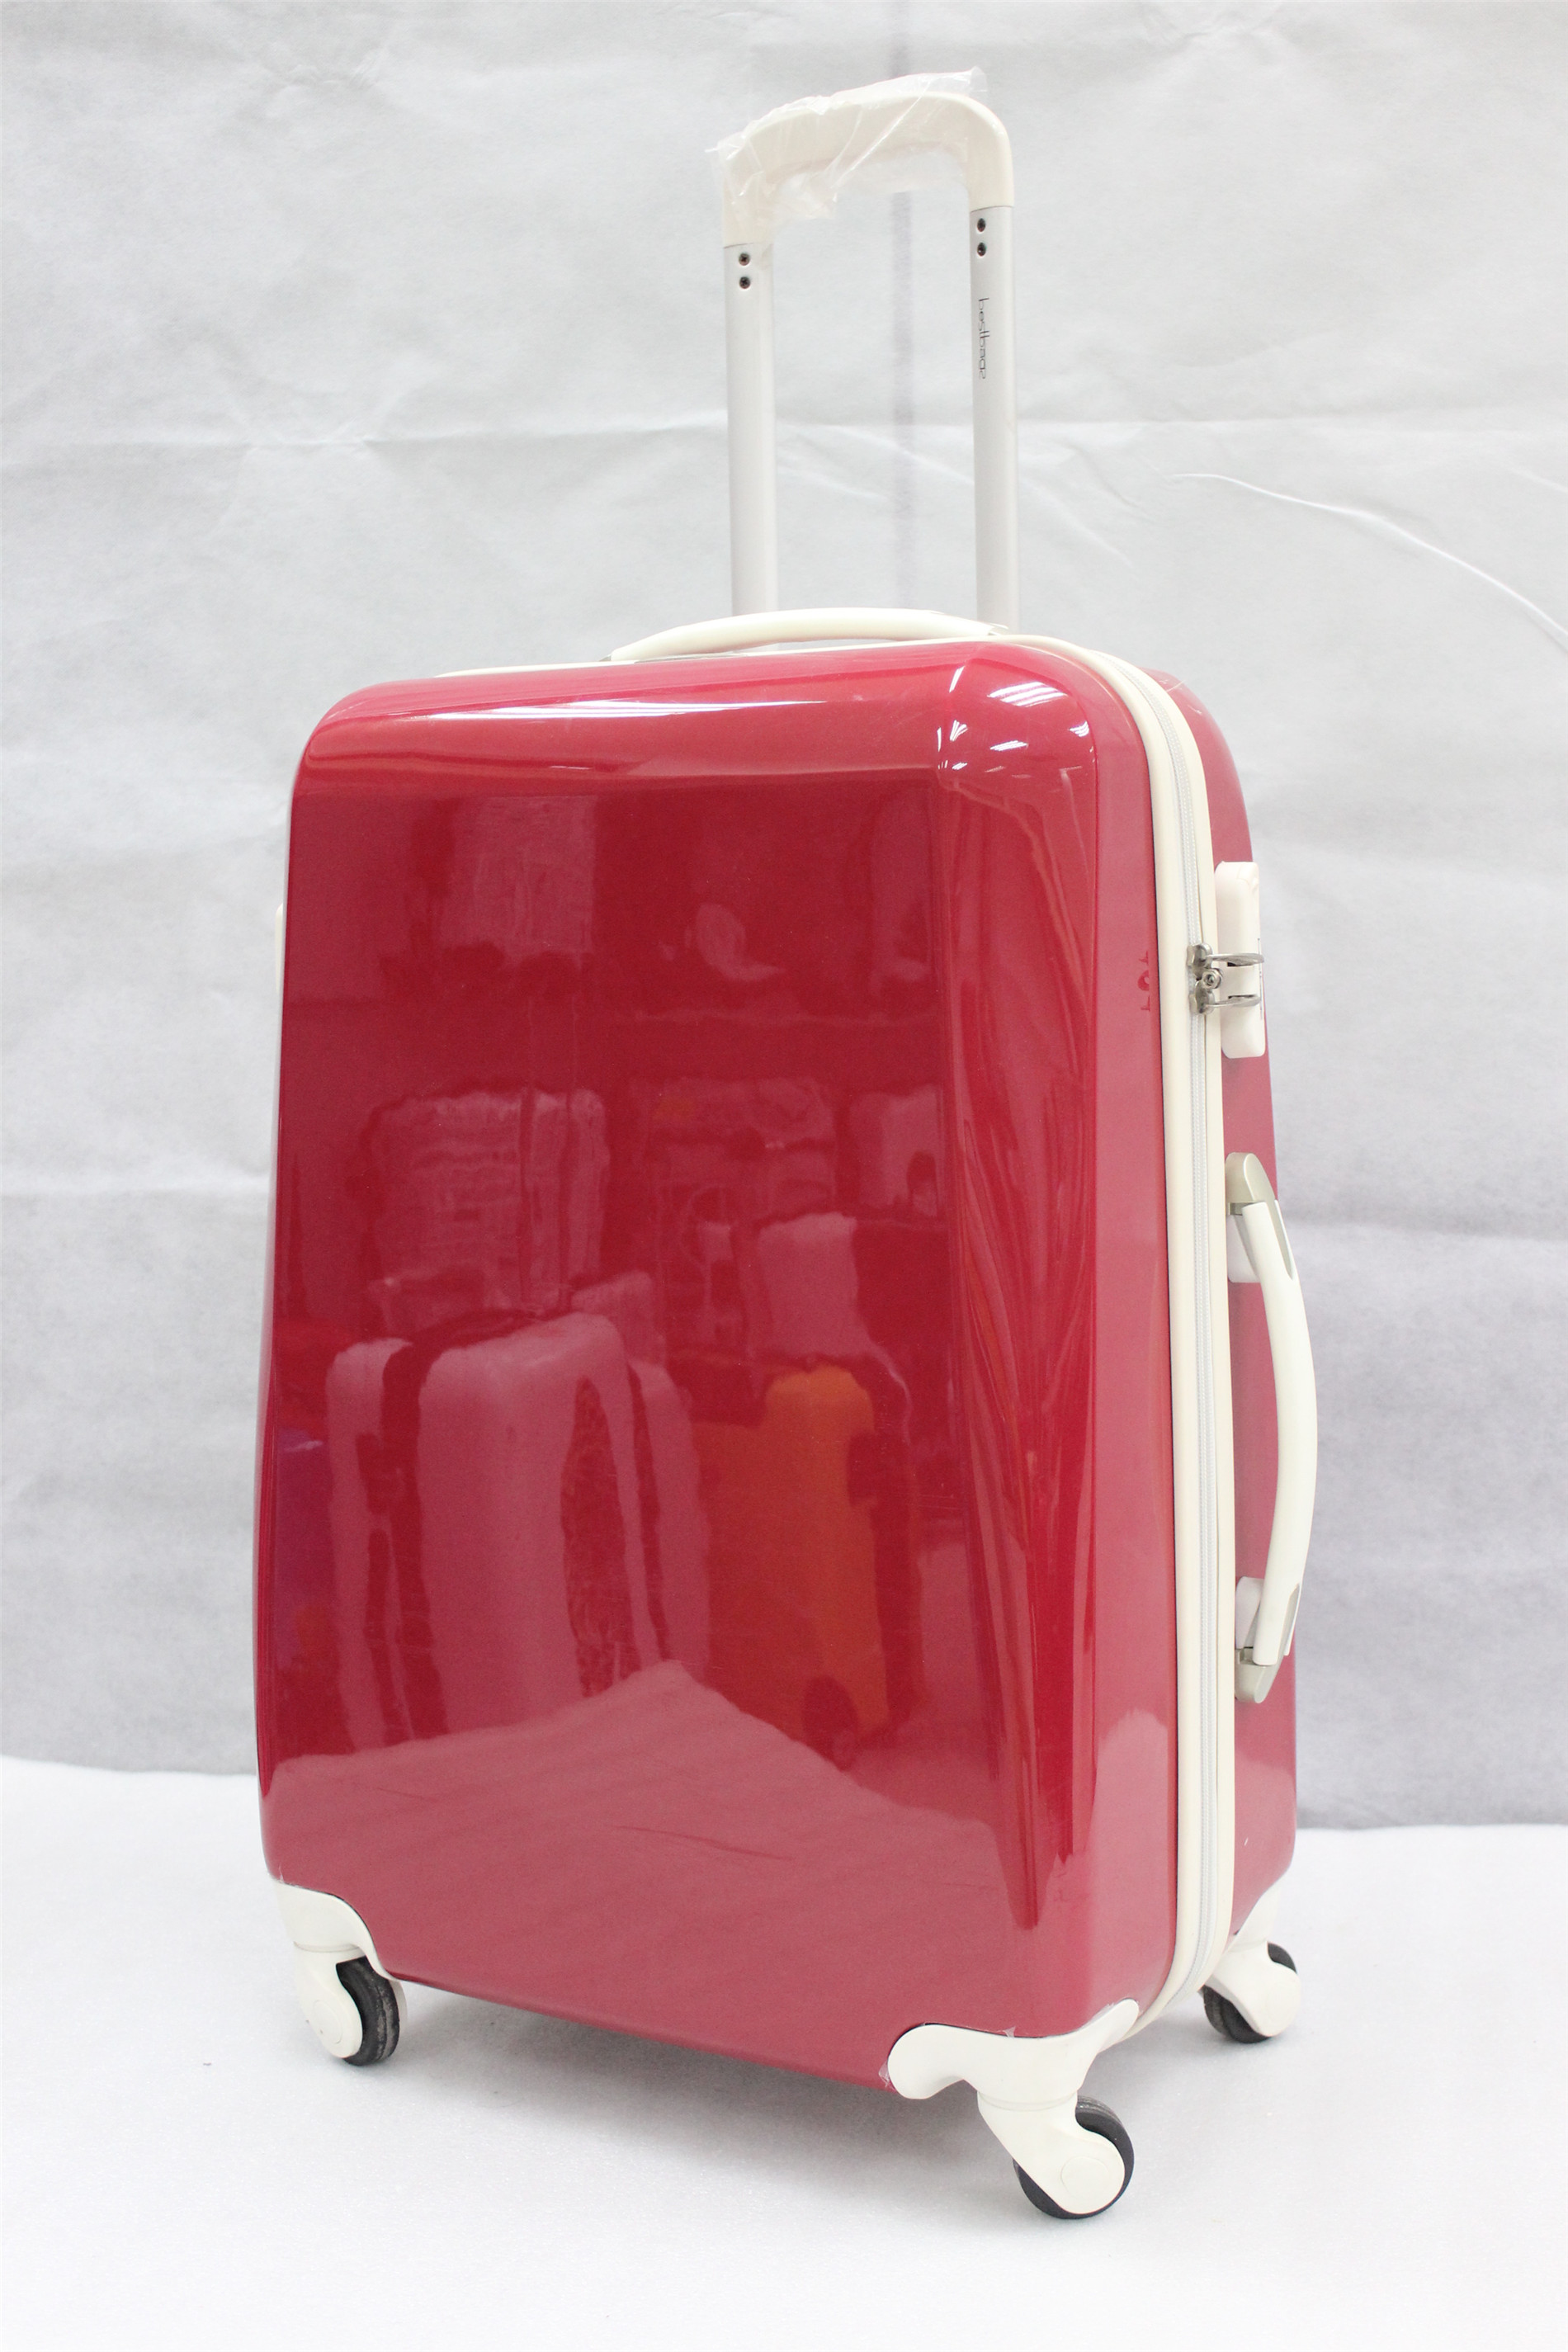 yanteng hard shell suitcase in shiny red